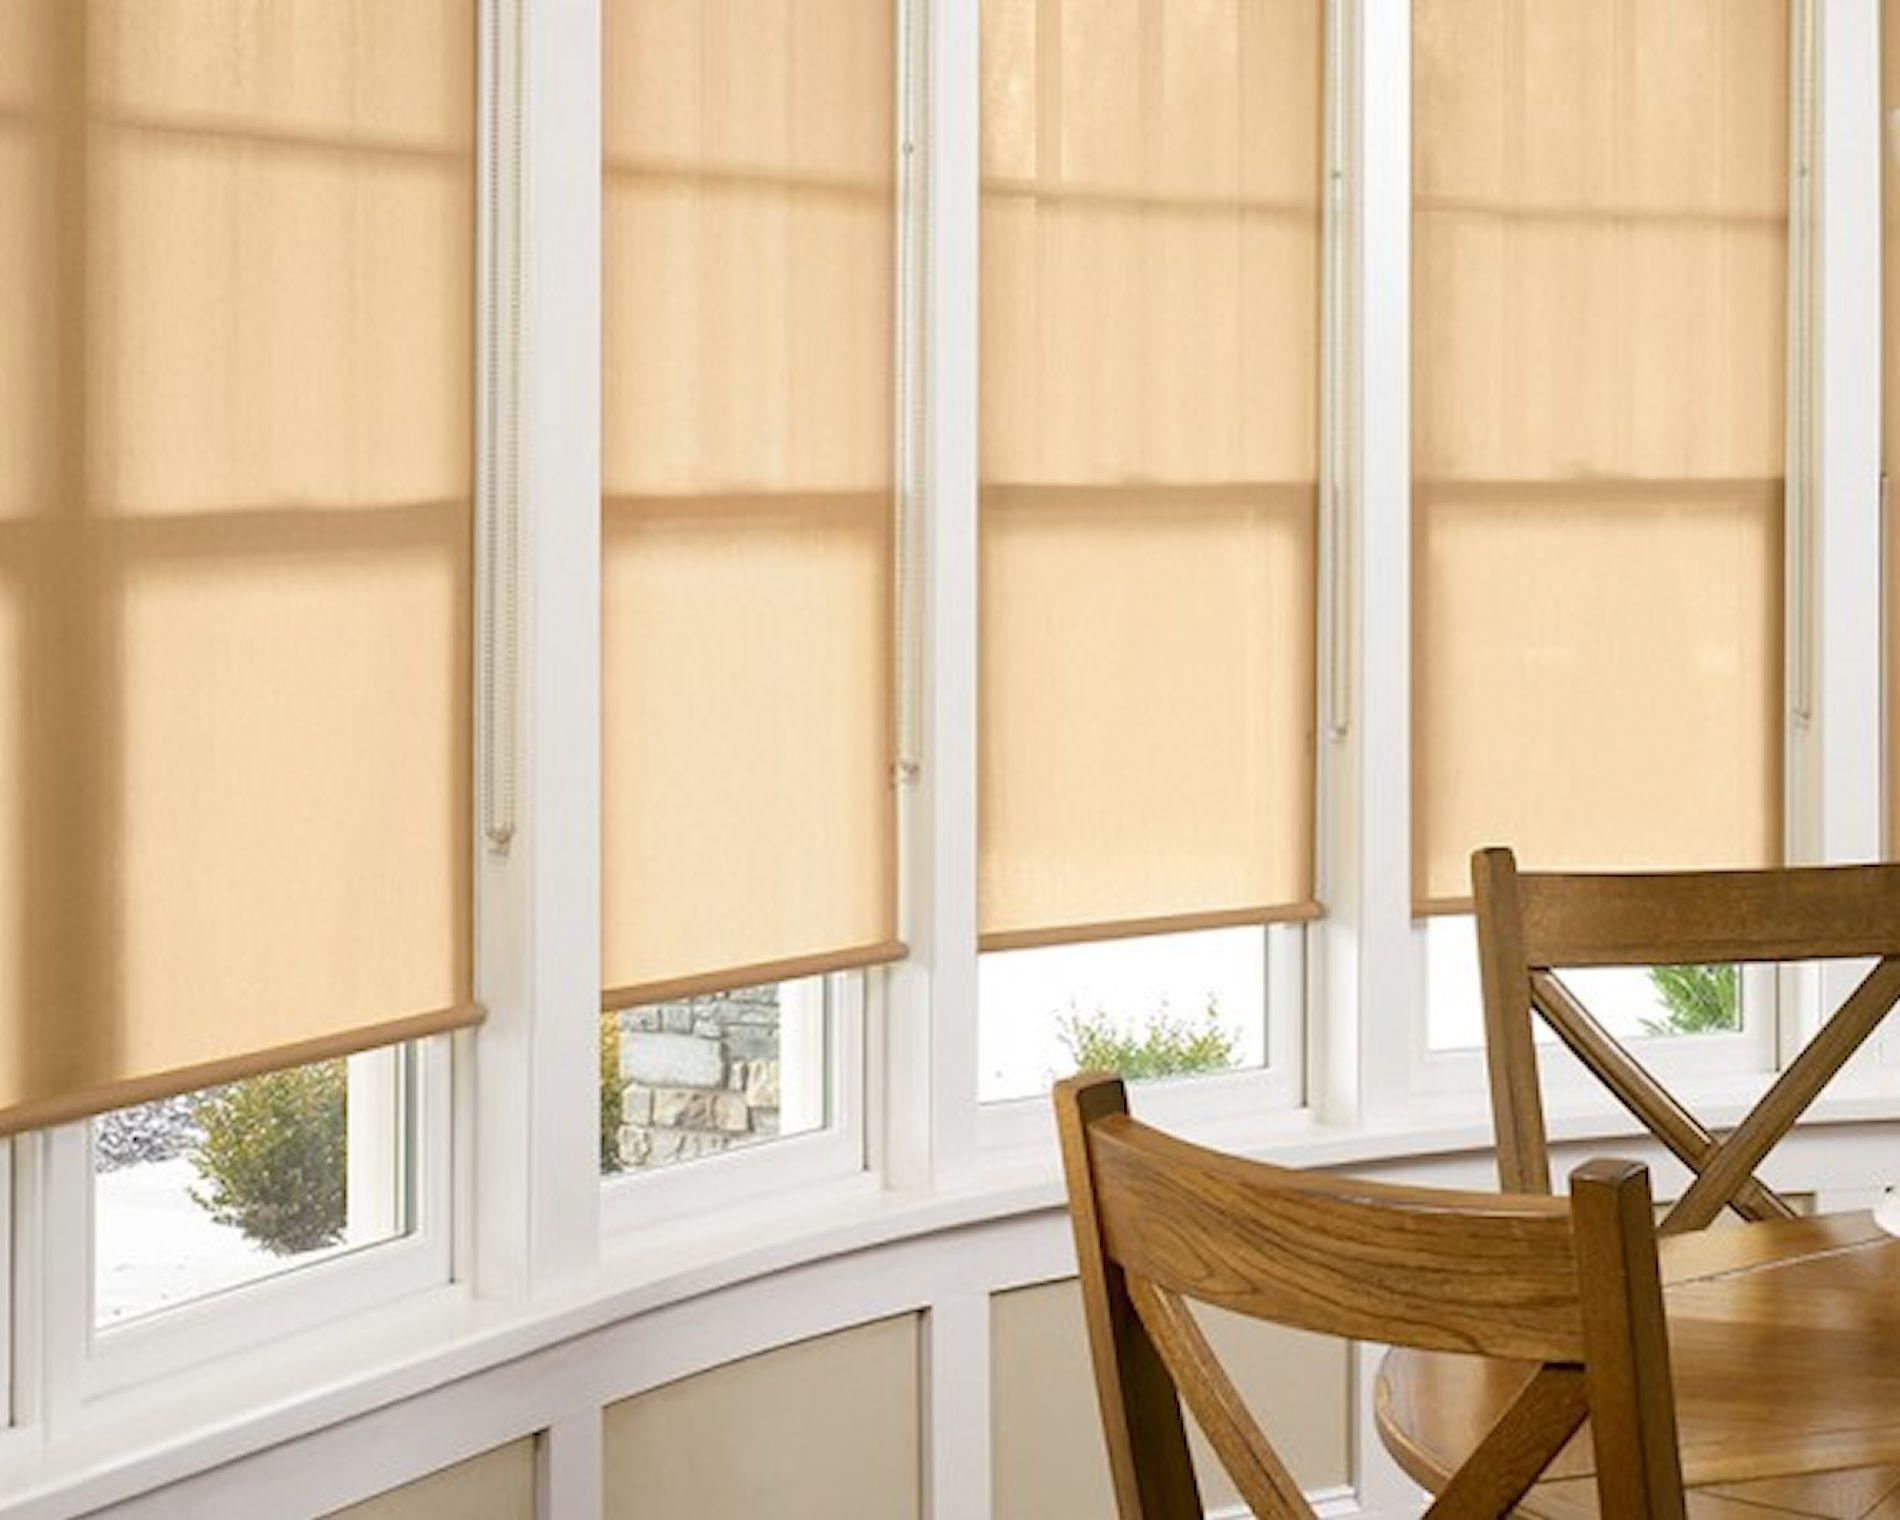 Roller shades covering a window